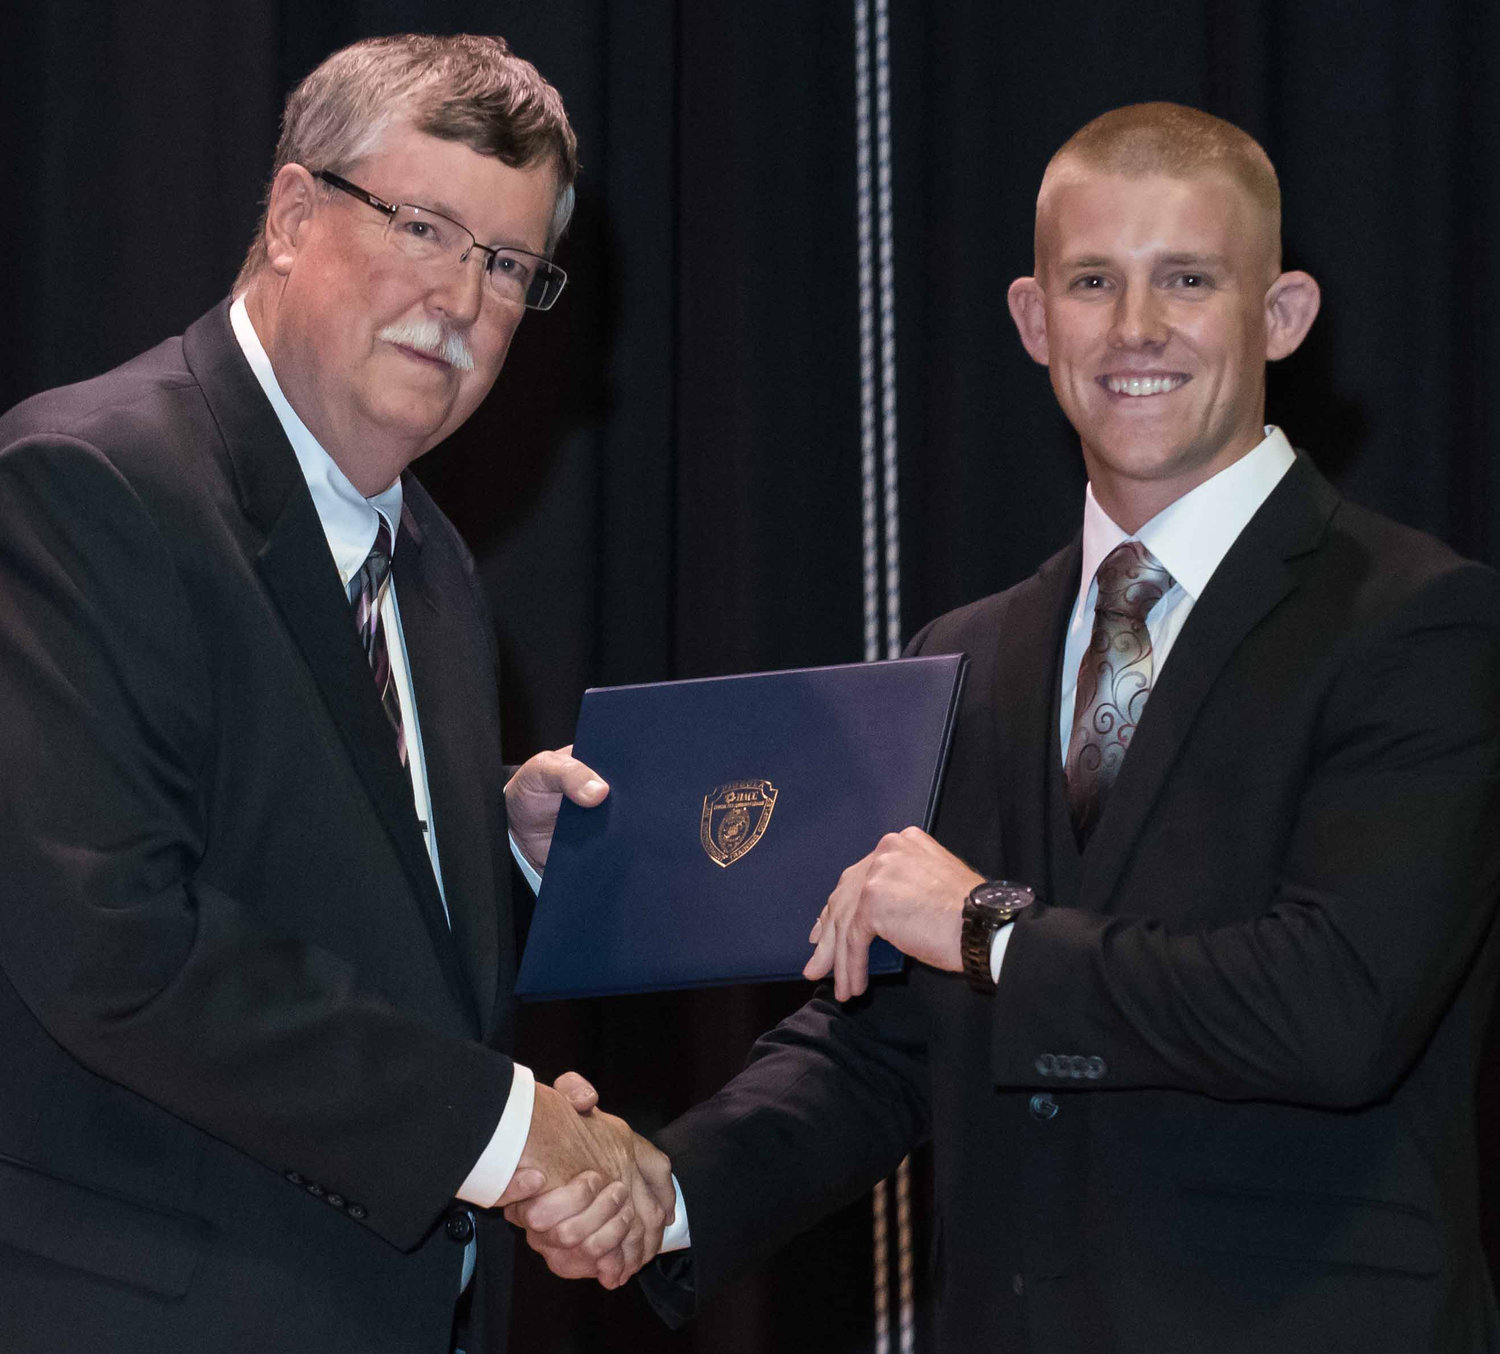 Todd Michael Houser Jr., right, is congratulated by Sgt. William Sindorf, a HACC Police Academy instructor and a retired Manheim Township police officer, for graduating in June.